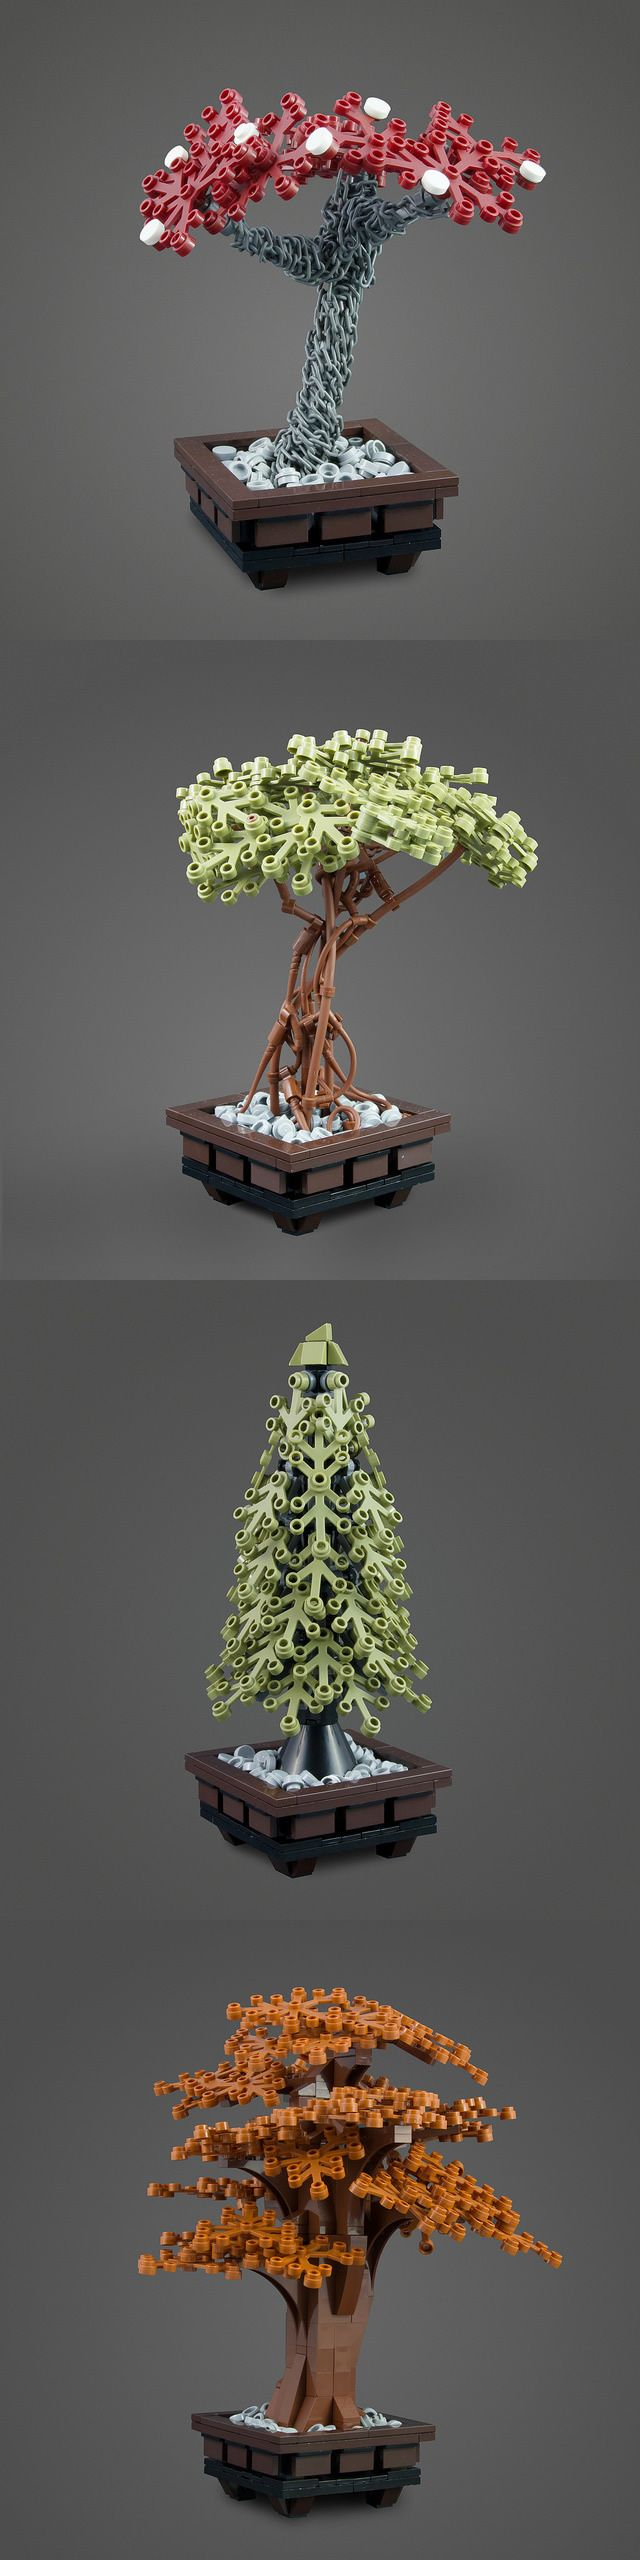 Chain Tree, Mangrove Tree, Pine Tree and Autumn Tree by Tim Schwalfenberg #LEGO #MOC #tree